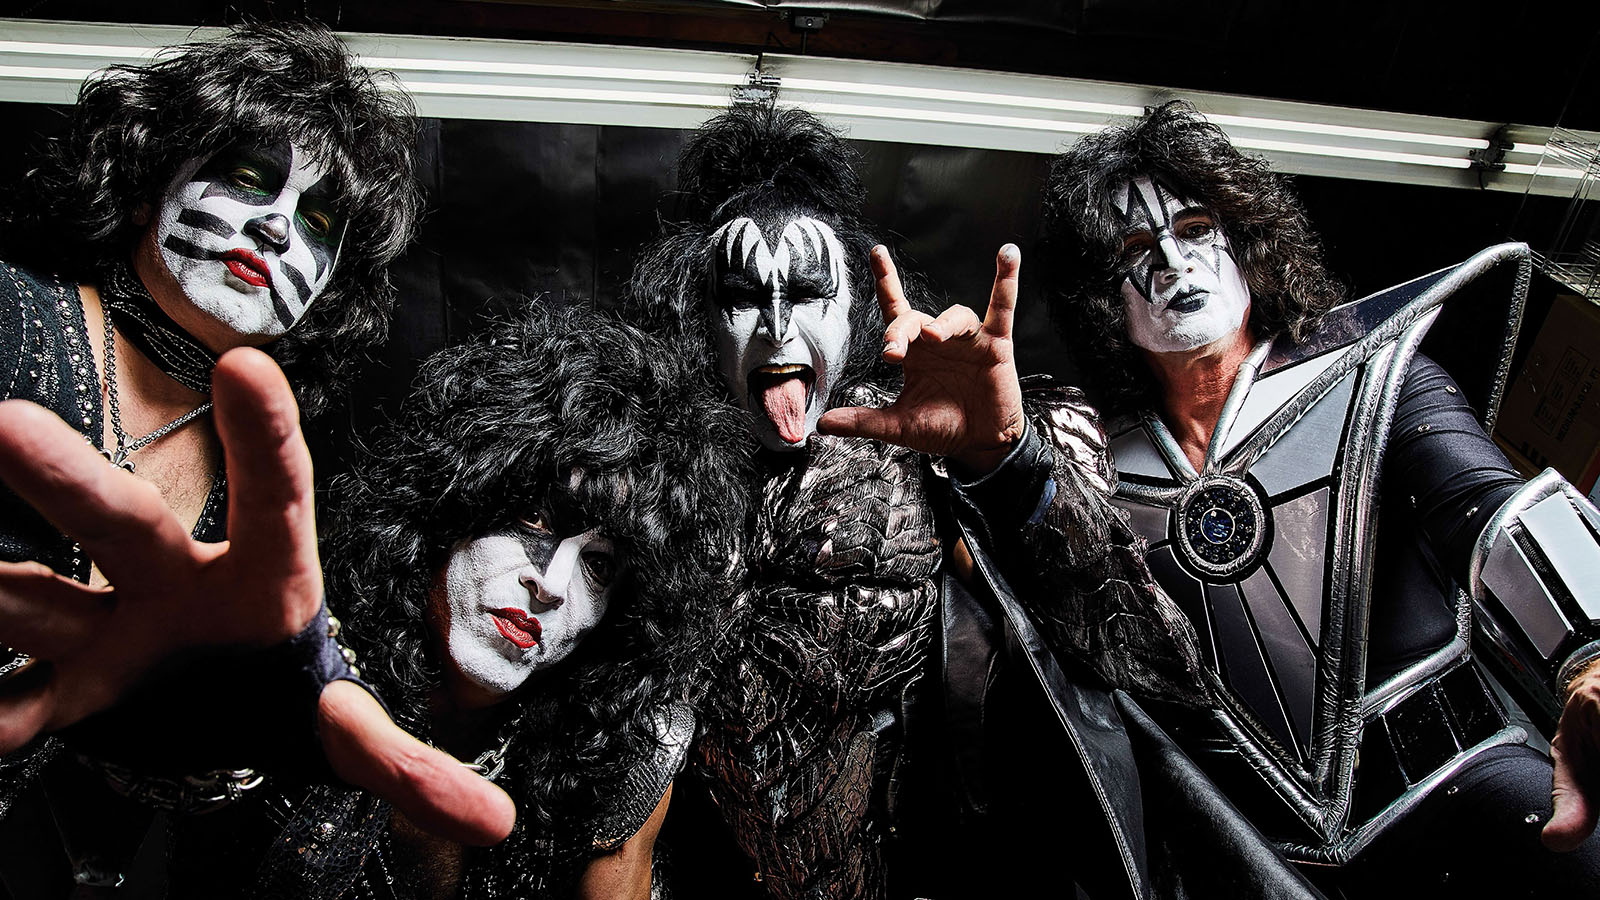 Kiss Legends Gene Simmons and Paul Stanley Talk Ace Frehley, Vinnie Vincent, Bruce Kulick and More